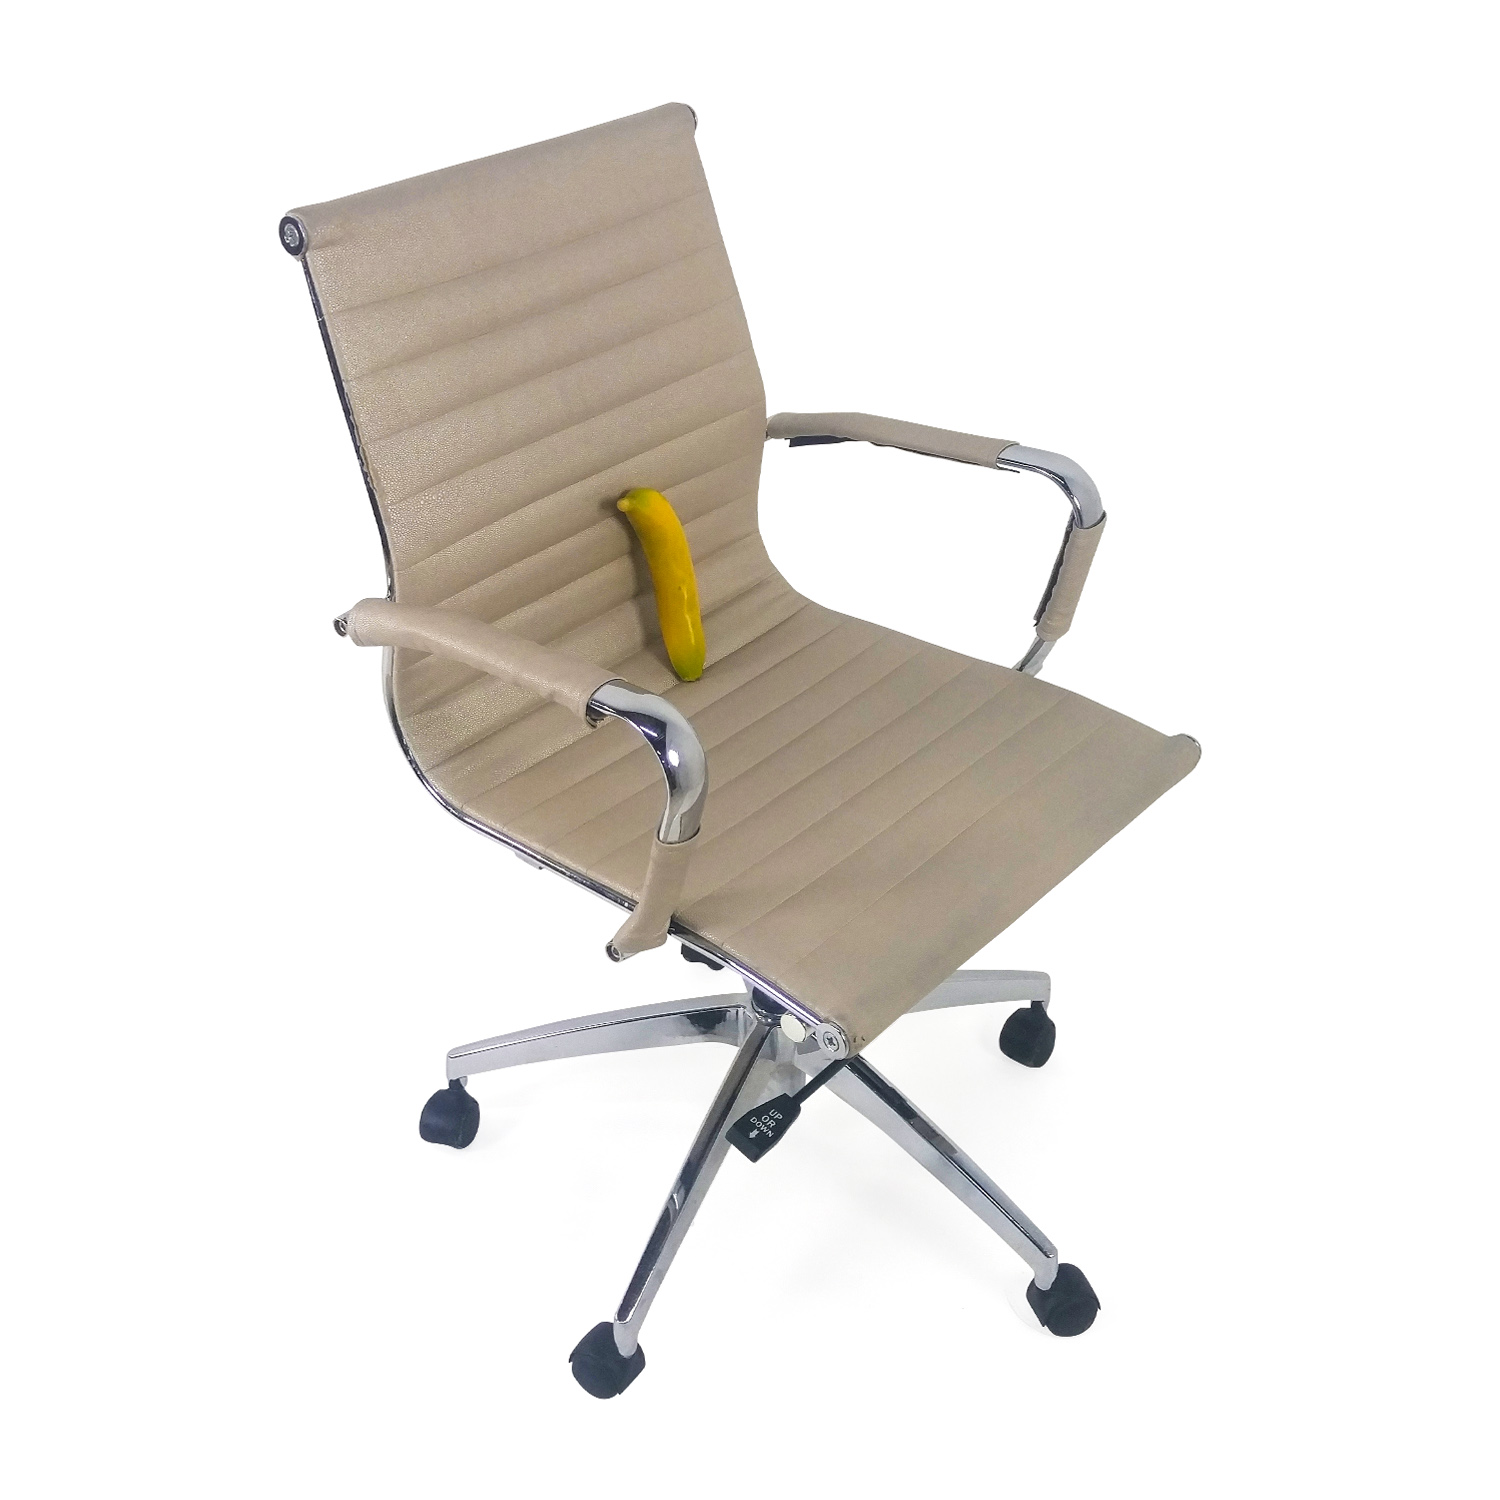 56 OFF  Eames Style Rolling Office Chair  Chairs